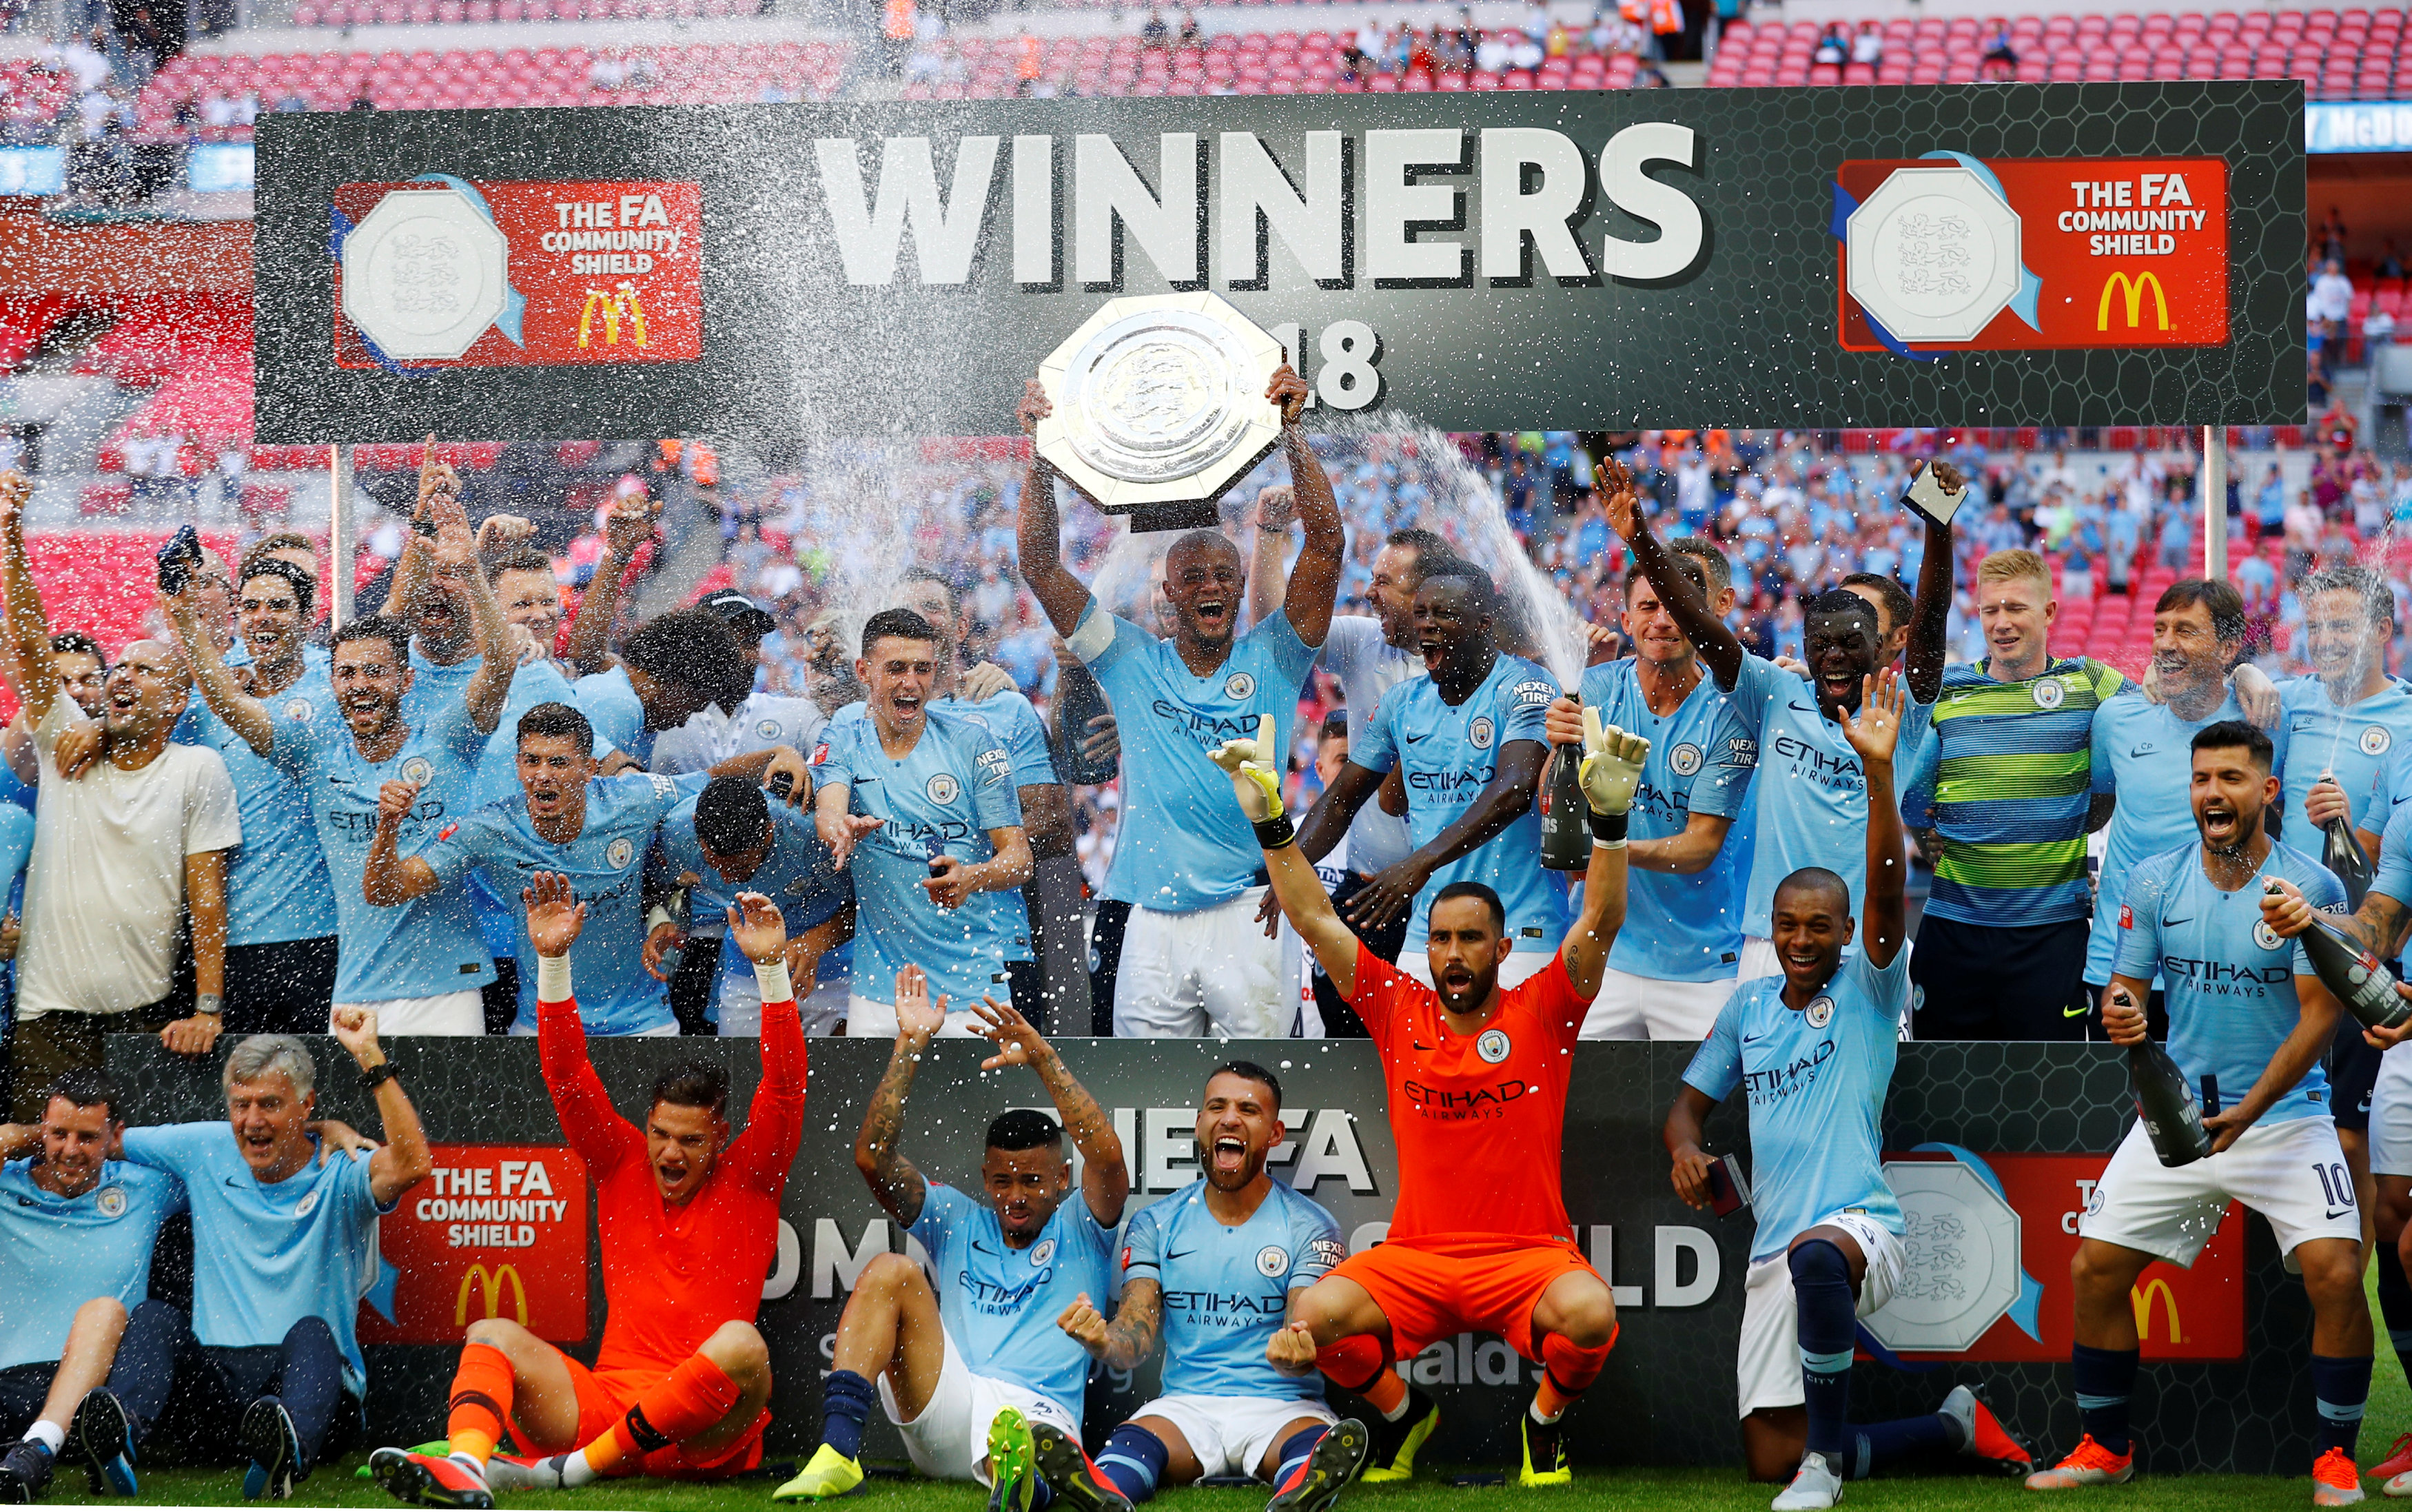 Football: Aguero strikes as City stroll past Chelsea at Wembley